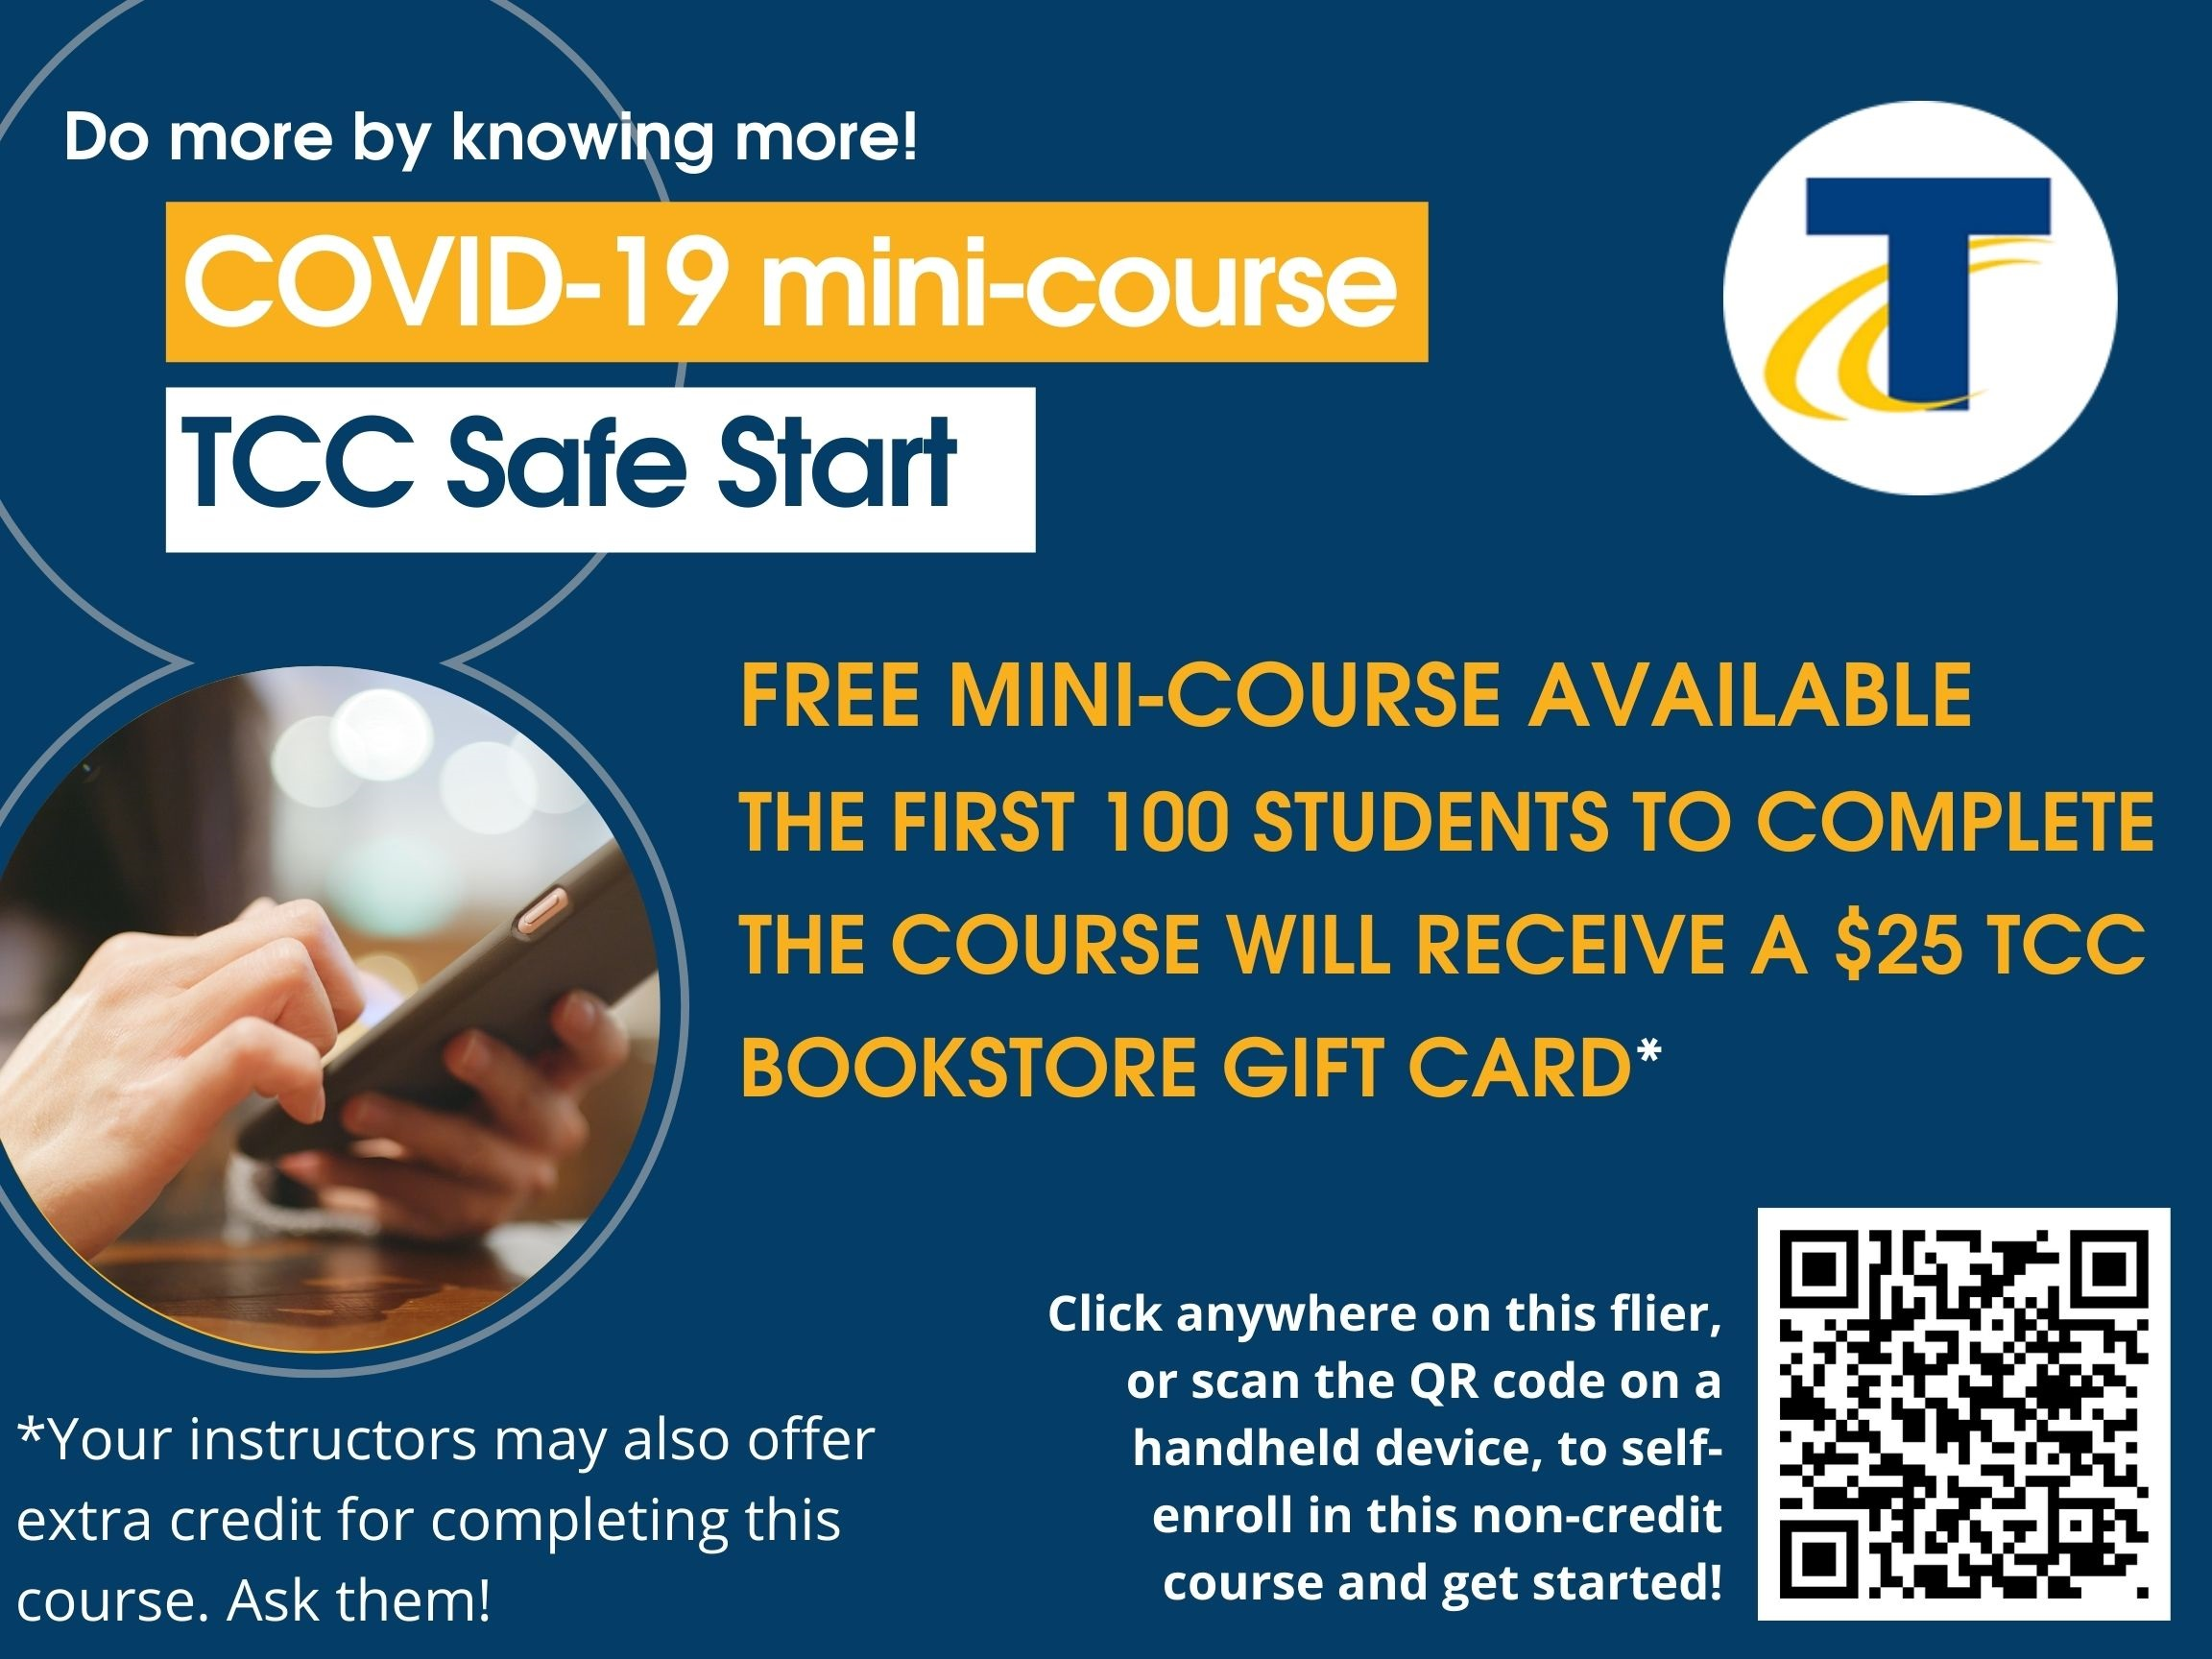 covid-19 mini course flier. Click on the link to begin the course. the first 100 students to complete the course receive $25 gift card to the TCC Bookstore. Your instructors may offer extra credit as well. Ask them! More information available within the course itself.